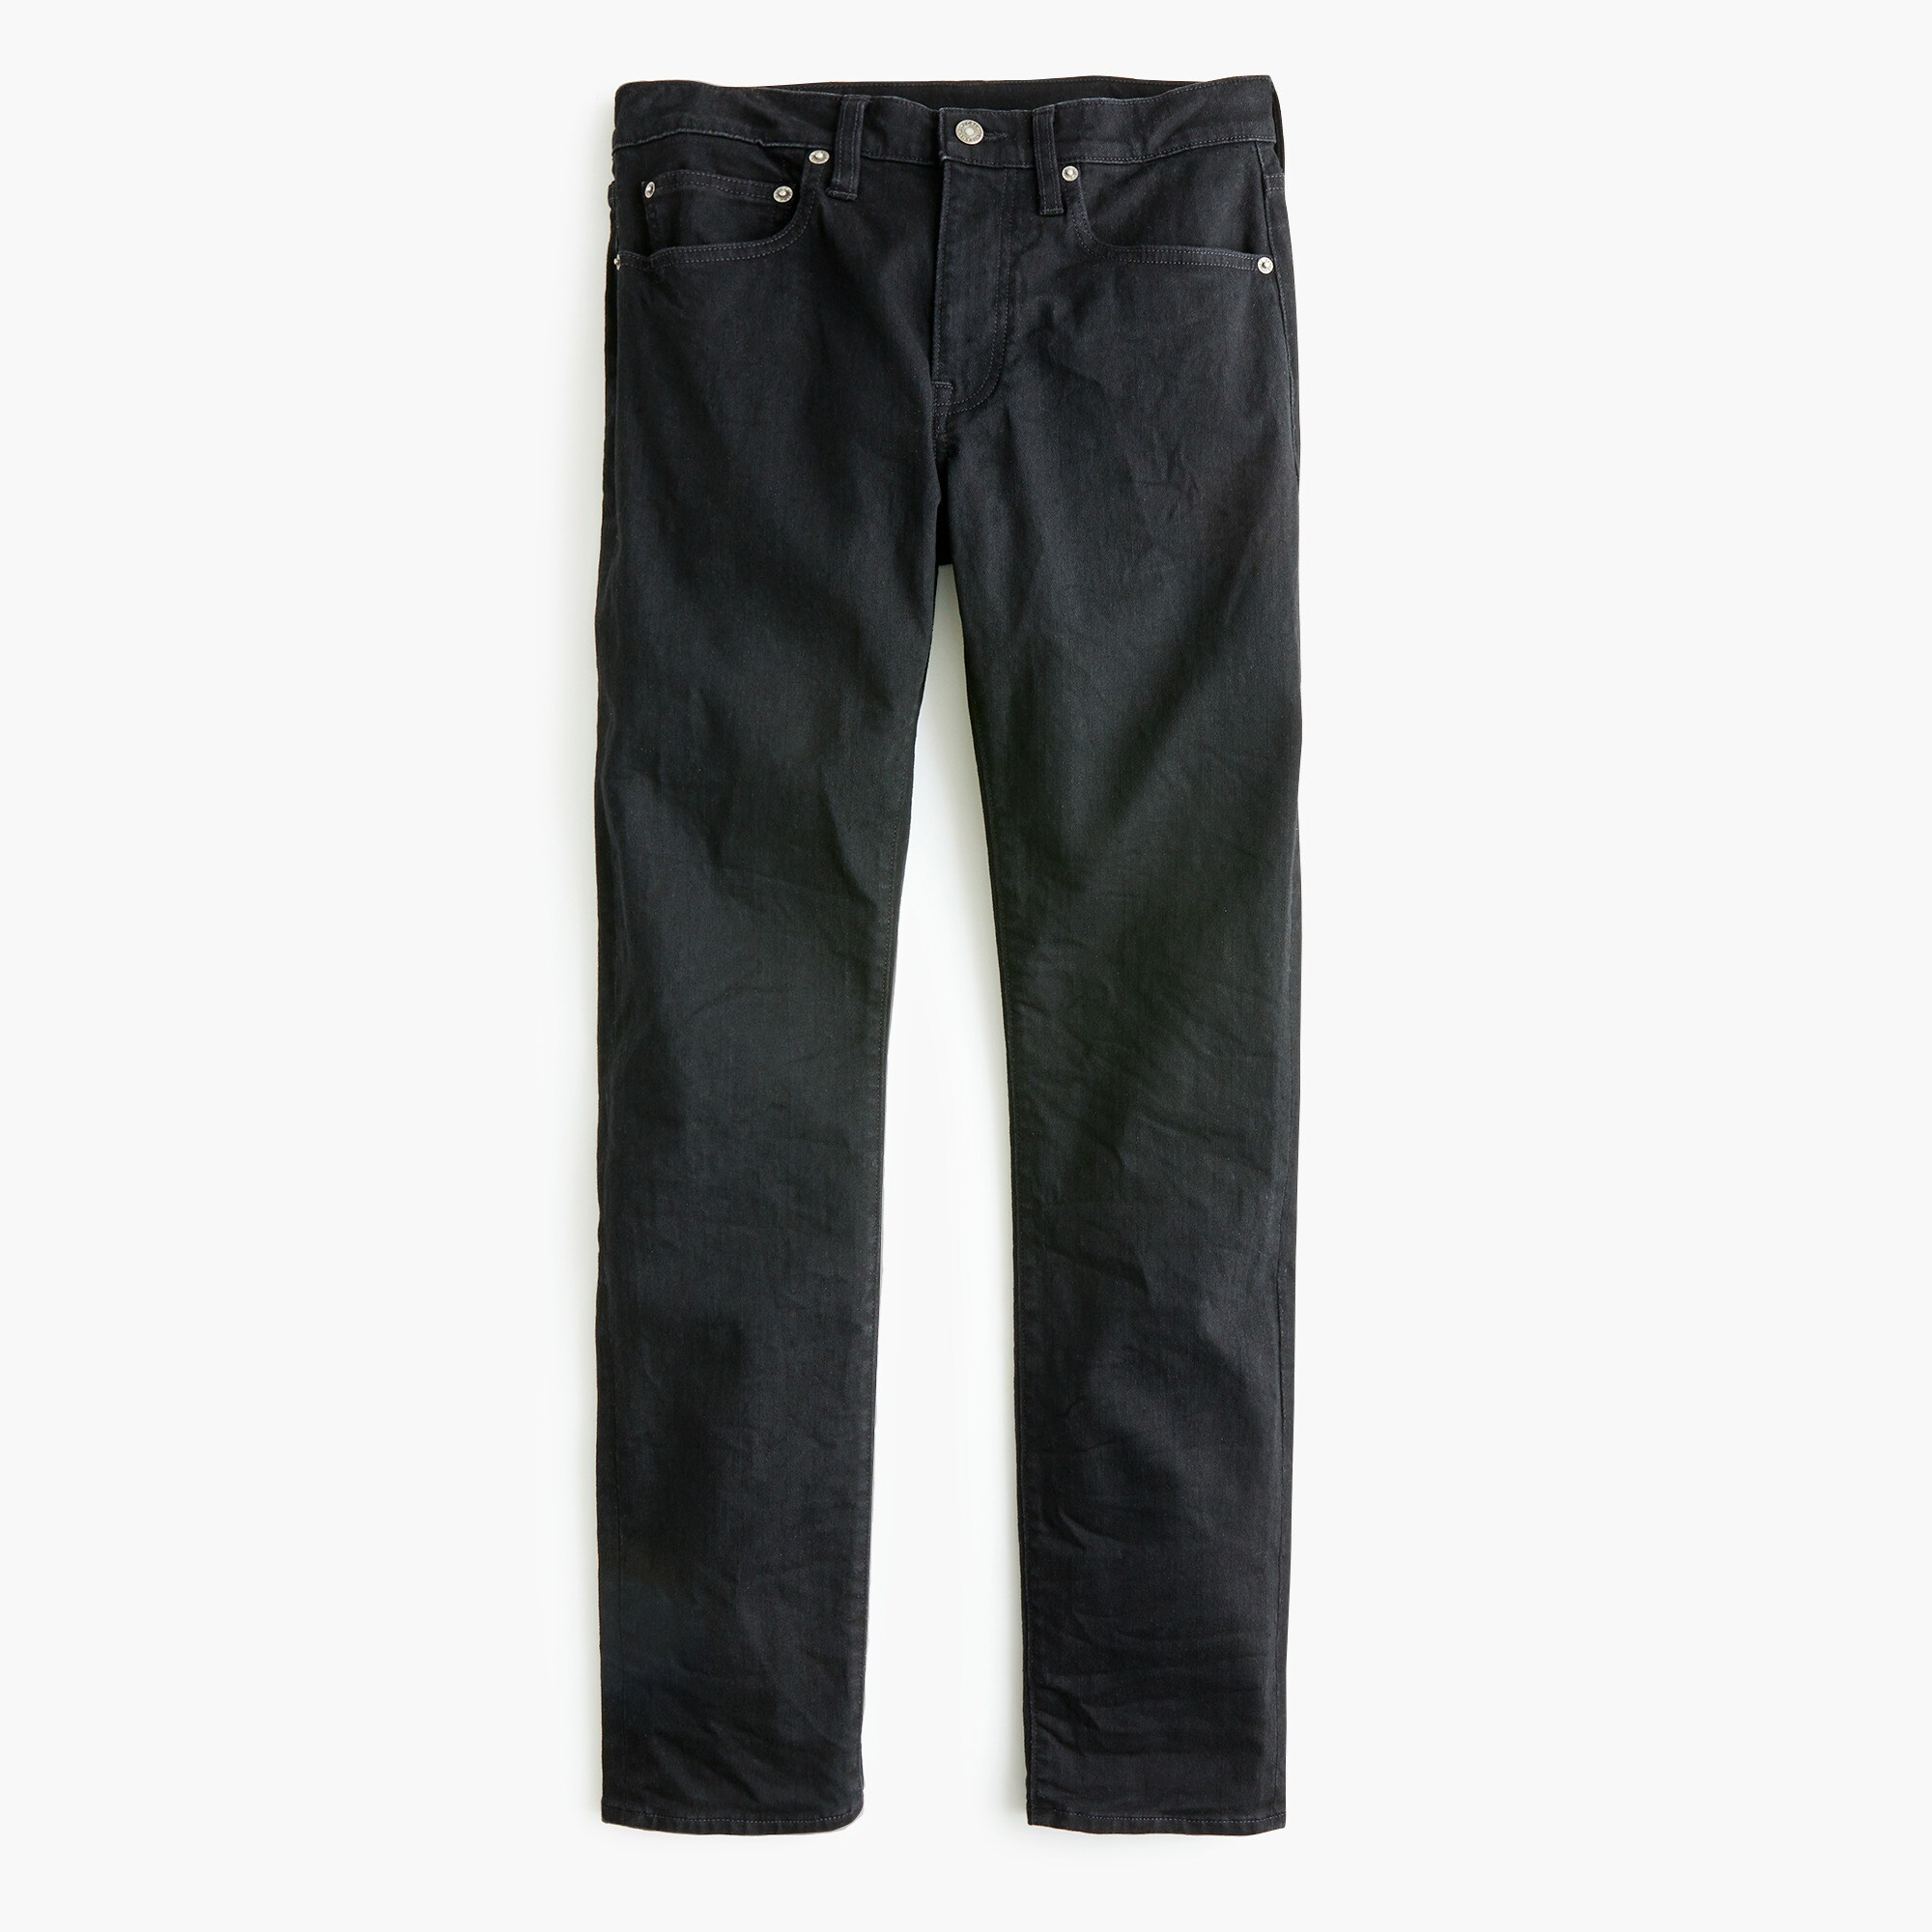 484 Slim-fit stretch jean in deep black